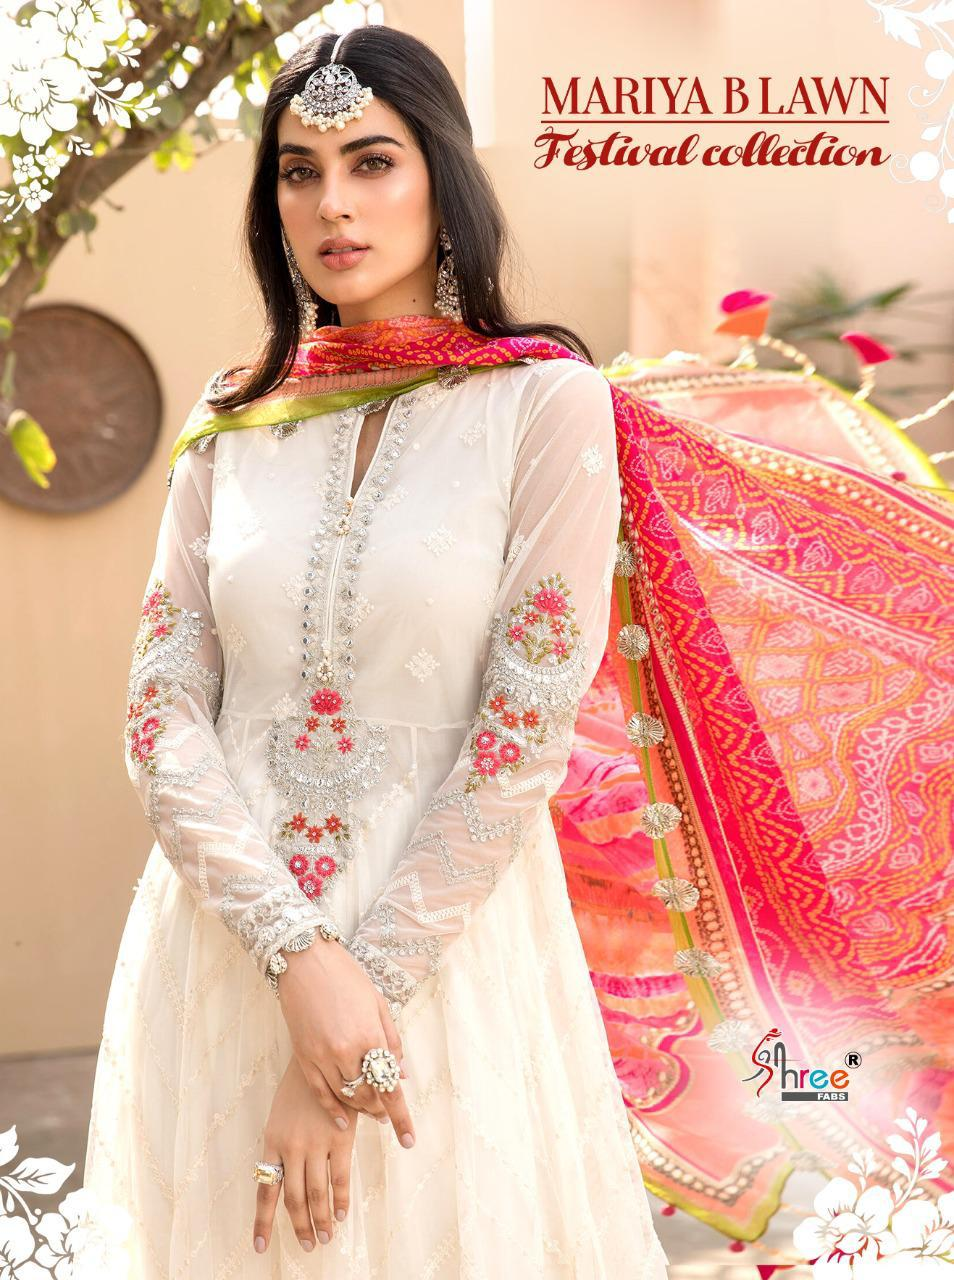 Shree Maria B Lawn Festival Collection collection 1